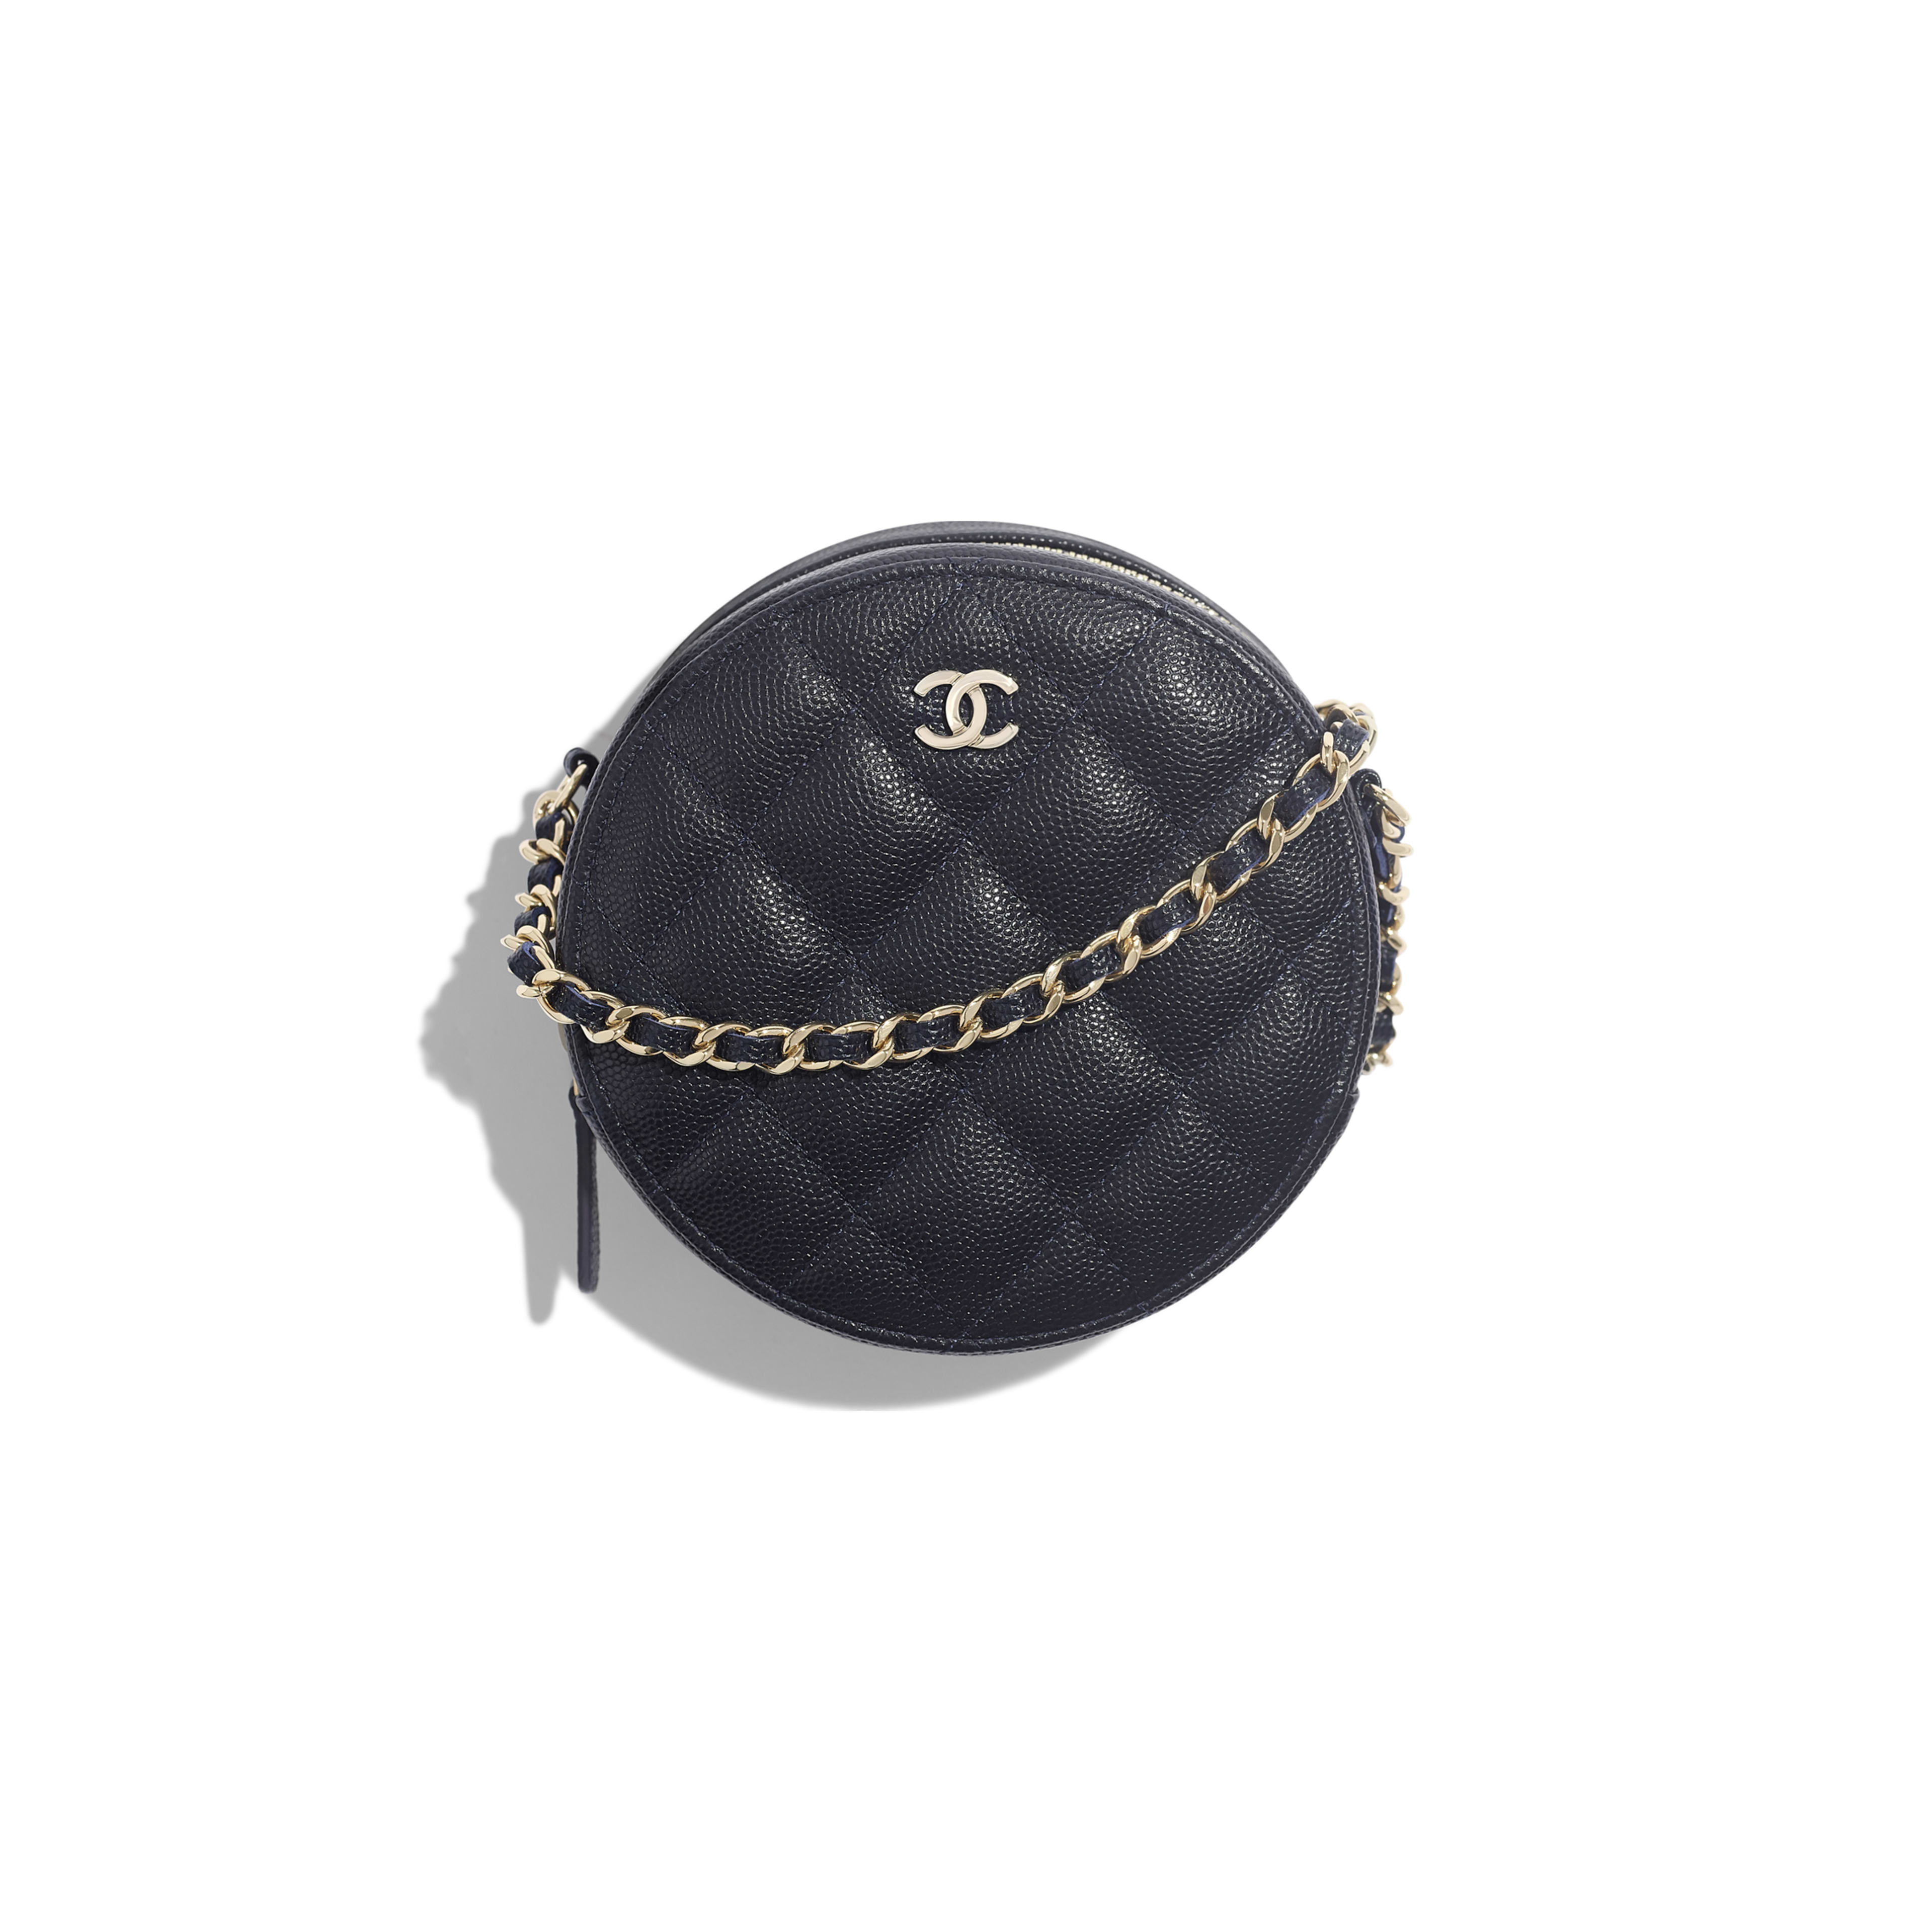 Classic Clutch With Chain - Navy Blue - Grained Calfskin & Gold-Tone Metal - Default view - see full sized version